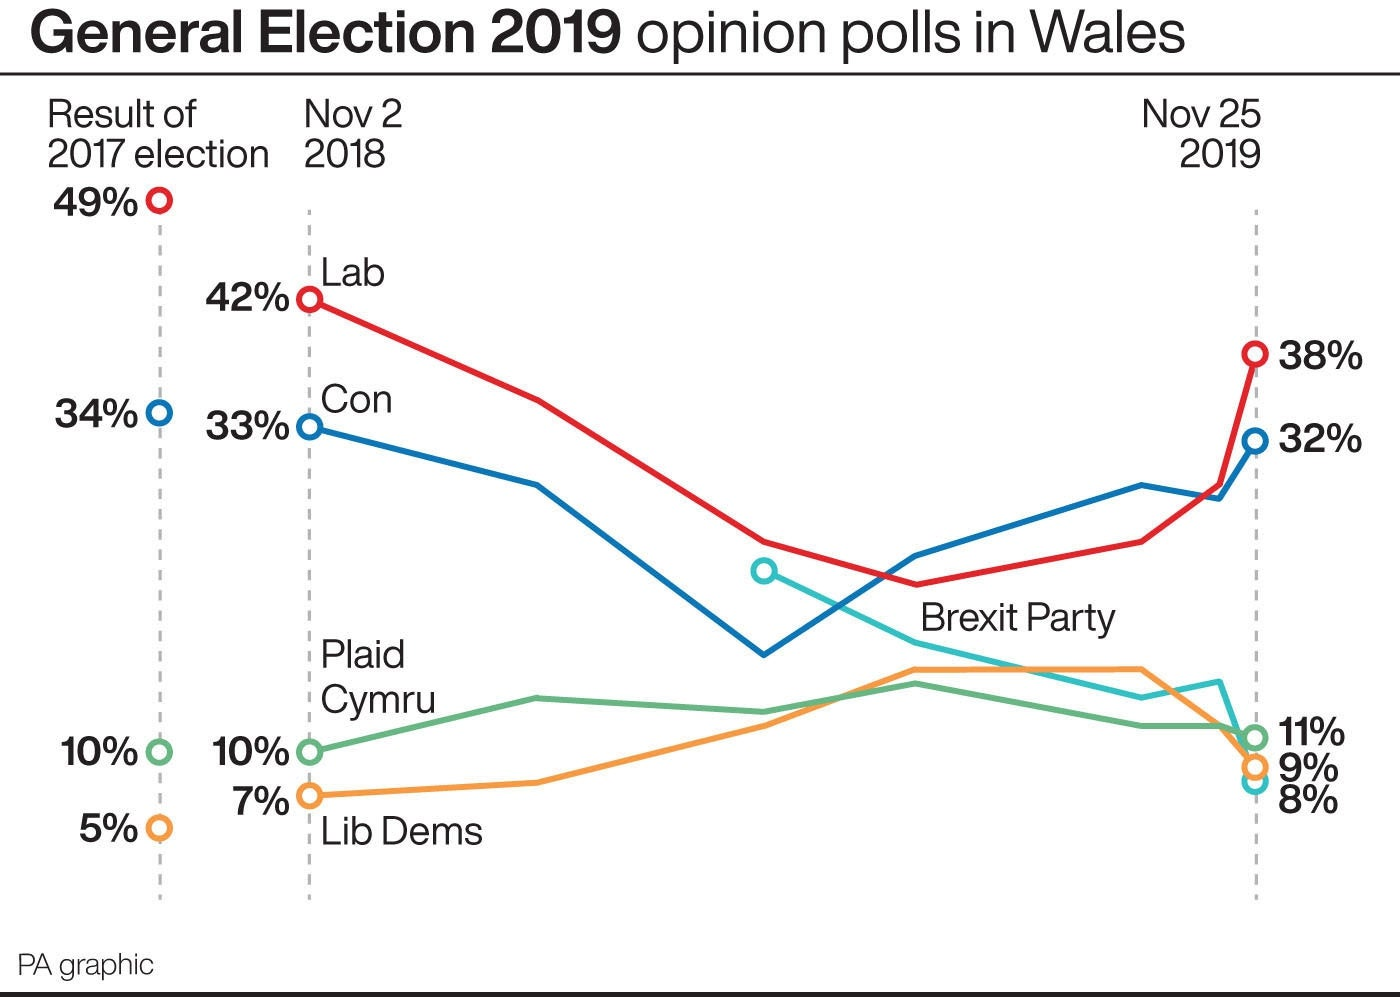 General election 2019 opinion polls in Wales